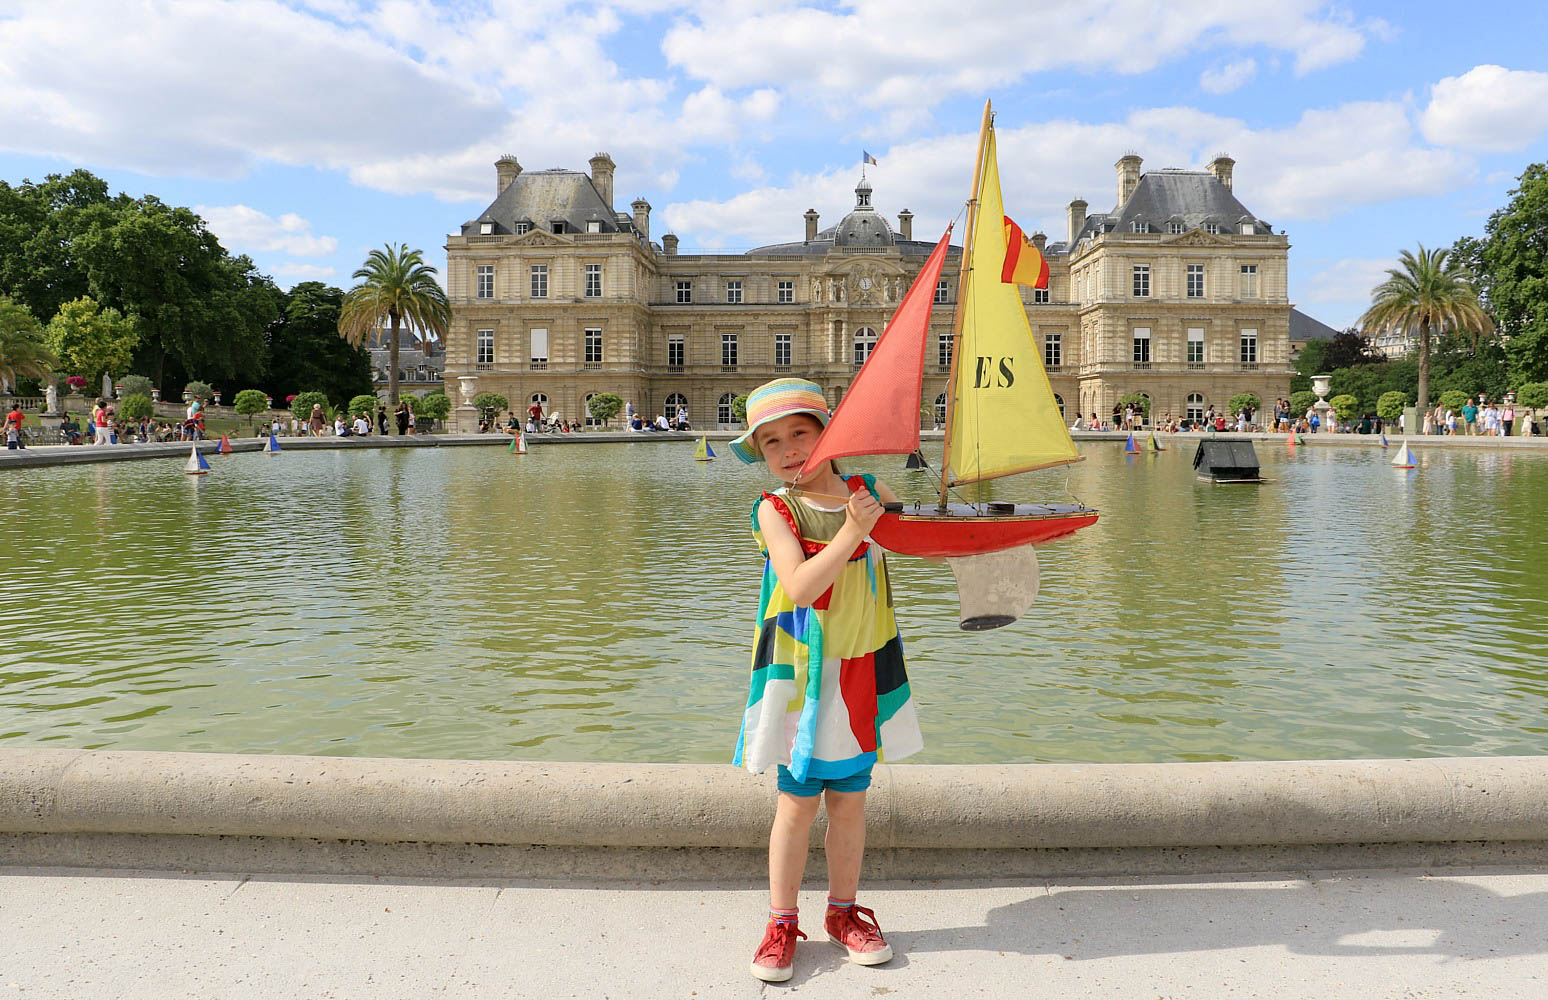 But Jardin Sailing Boats At Le Jardin De Luxembourg Pod Travels